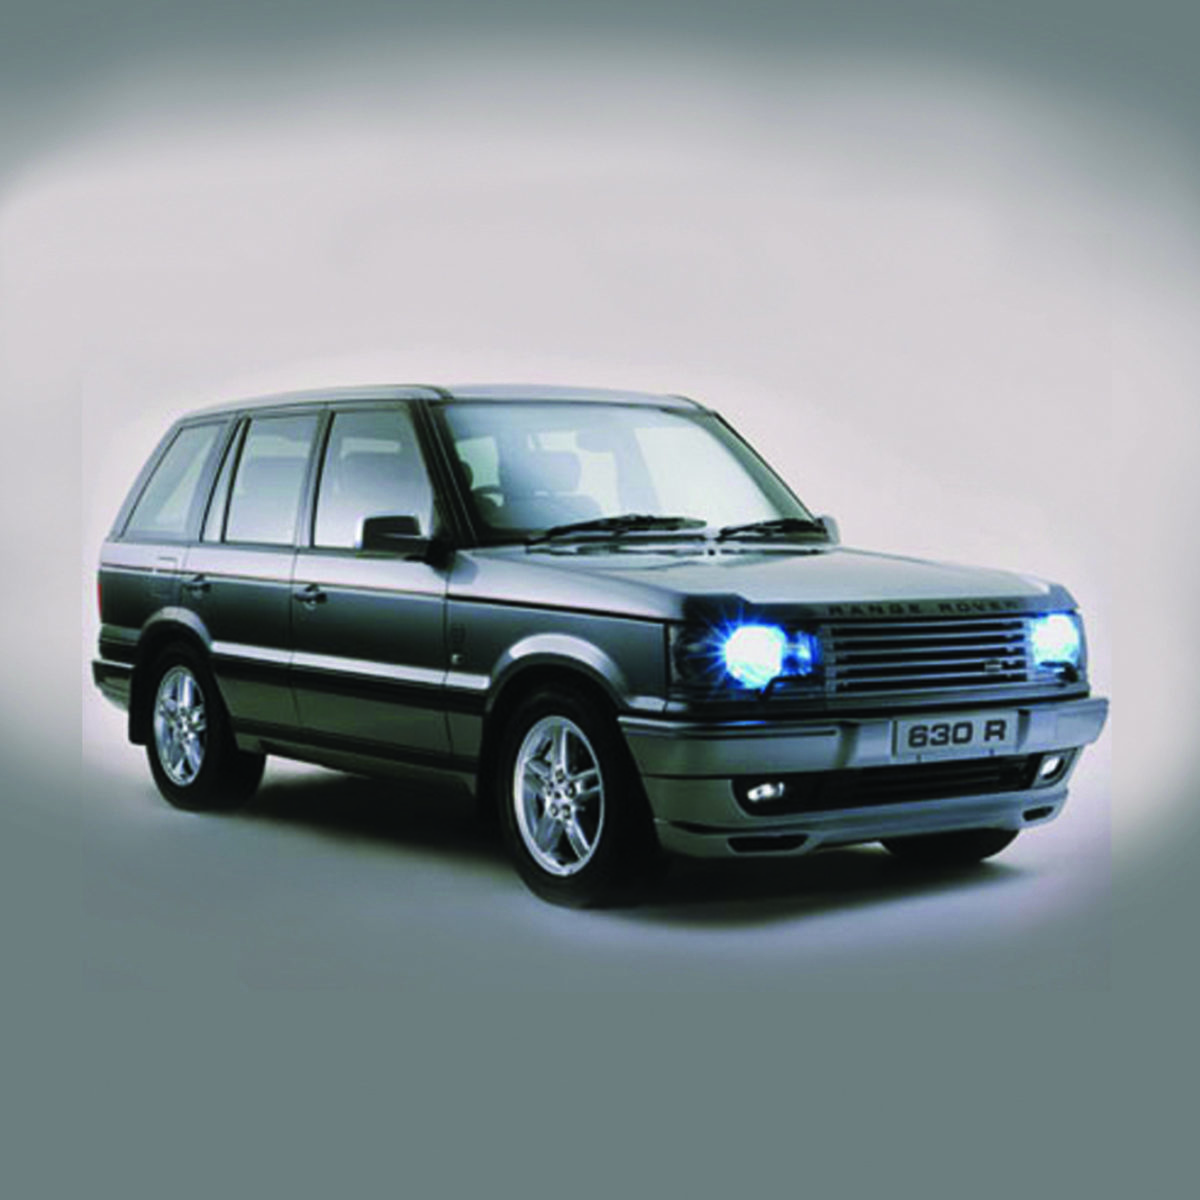 History Overfinch Range Rover P 38 Engine Diagrams A Quarter Century Of High Performance Rovers